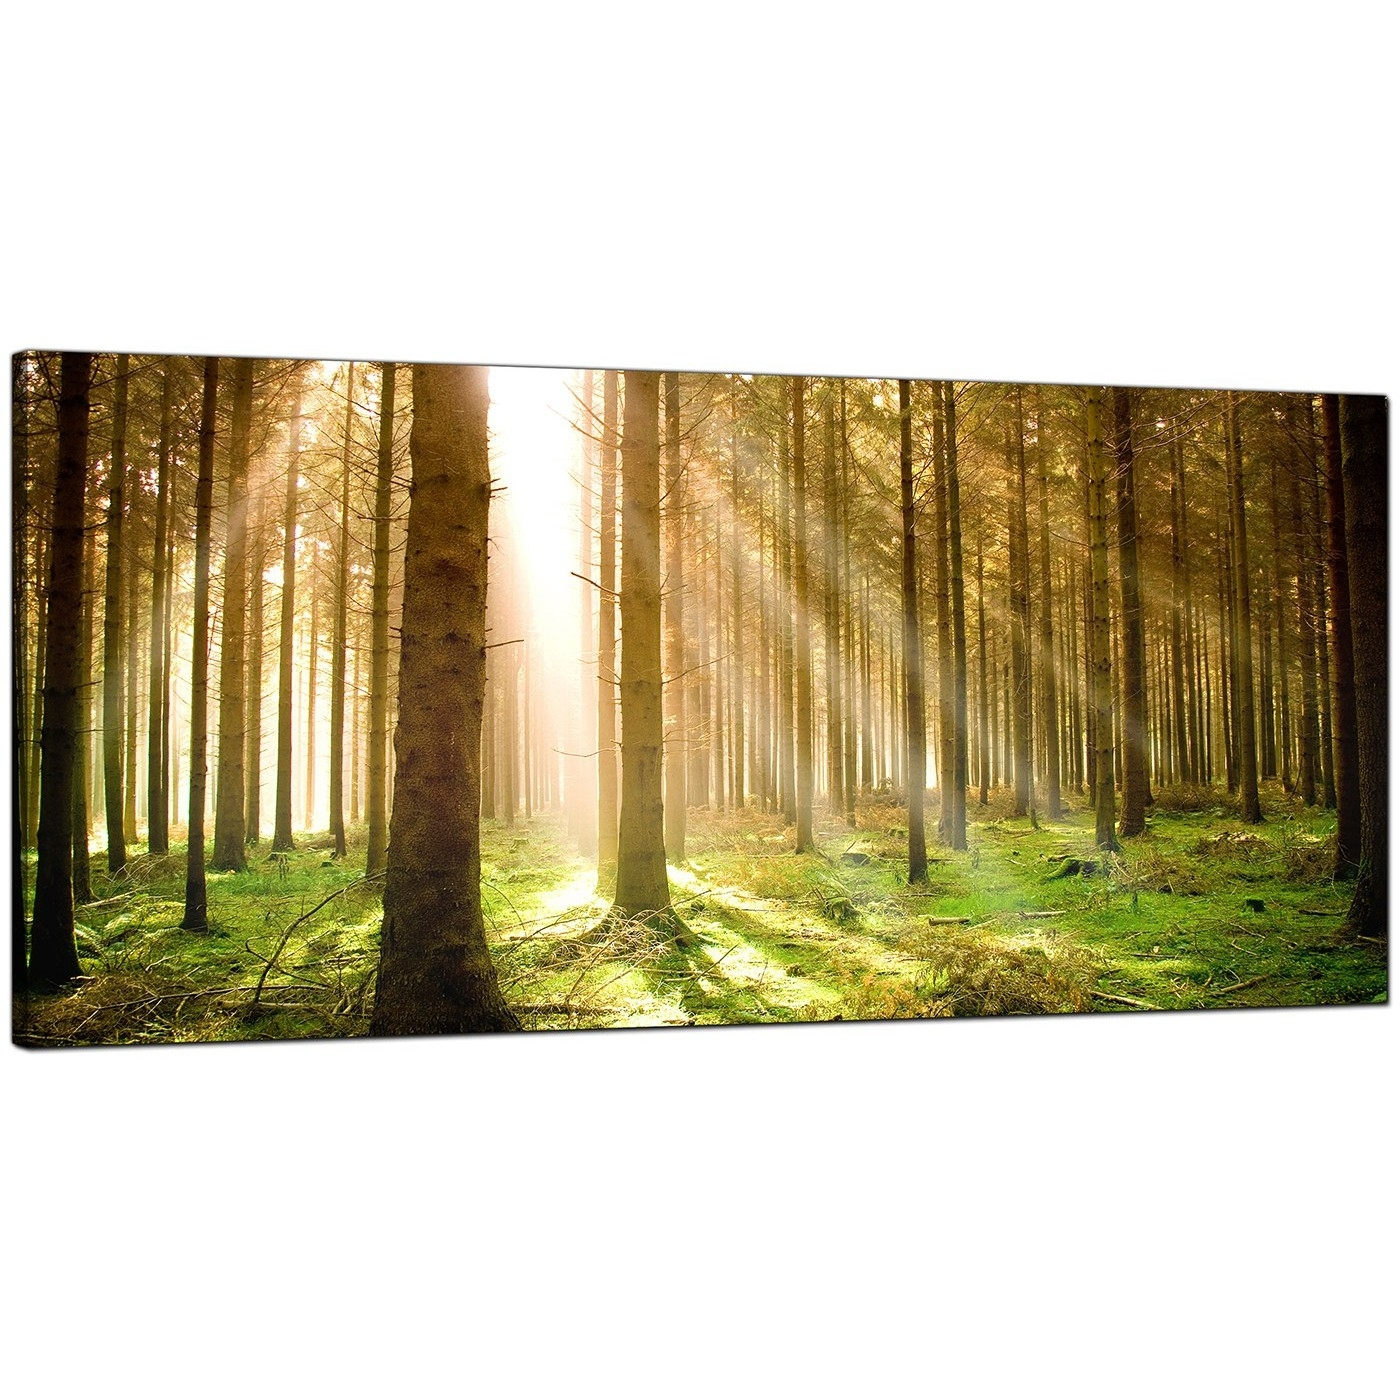 Modern Canvas Prints Of Forest Trees For Your Dining Room In Wall Art Prints (View 10 of 20)